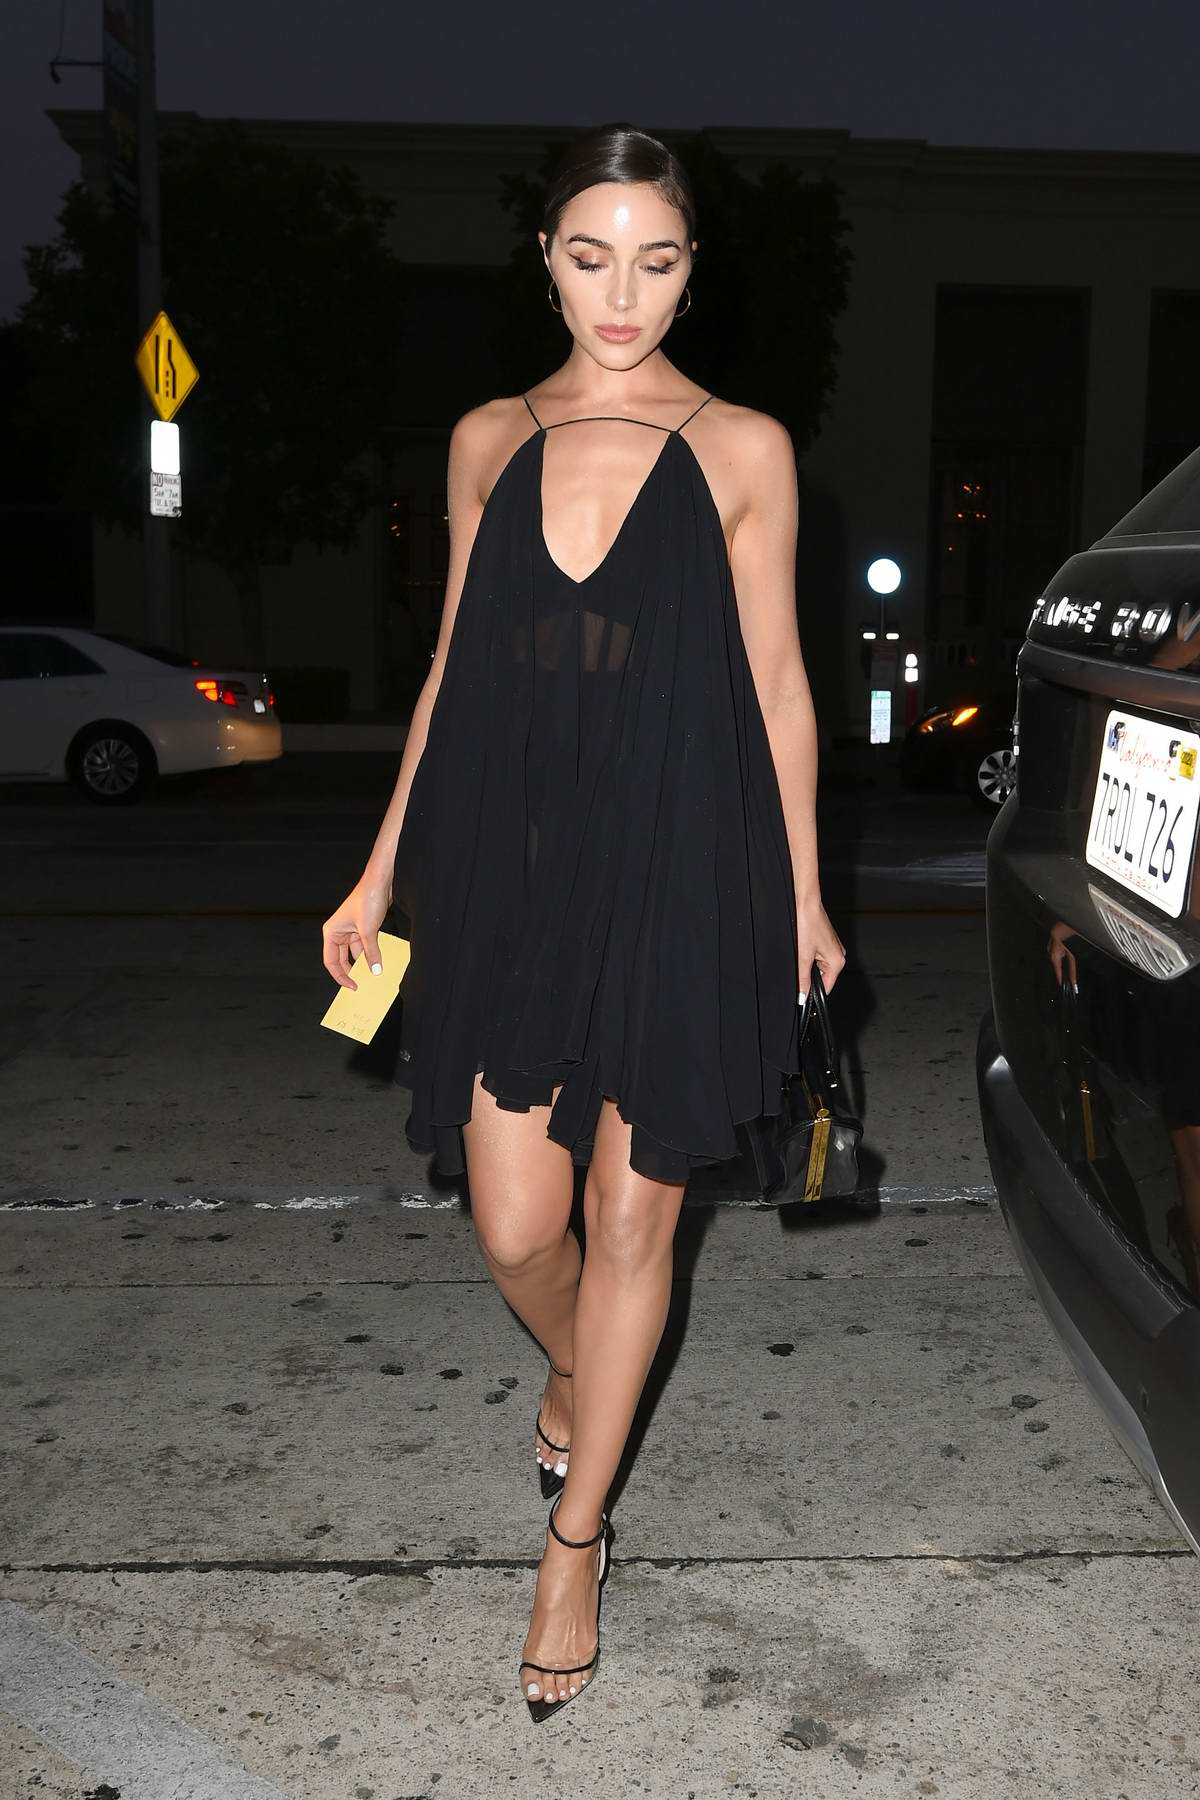 Olivia Culpo looks stunning in sheer black dress as she arrives for dinner at Catch restaurant in Los Angeles